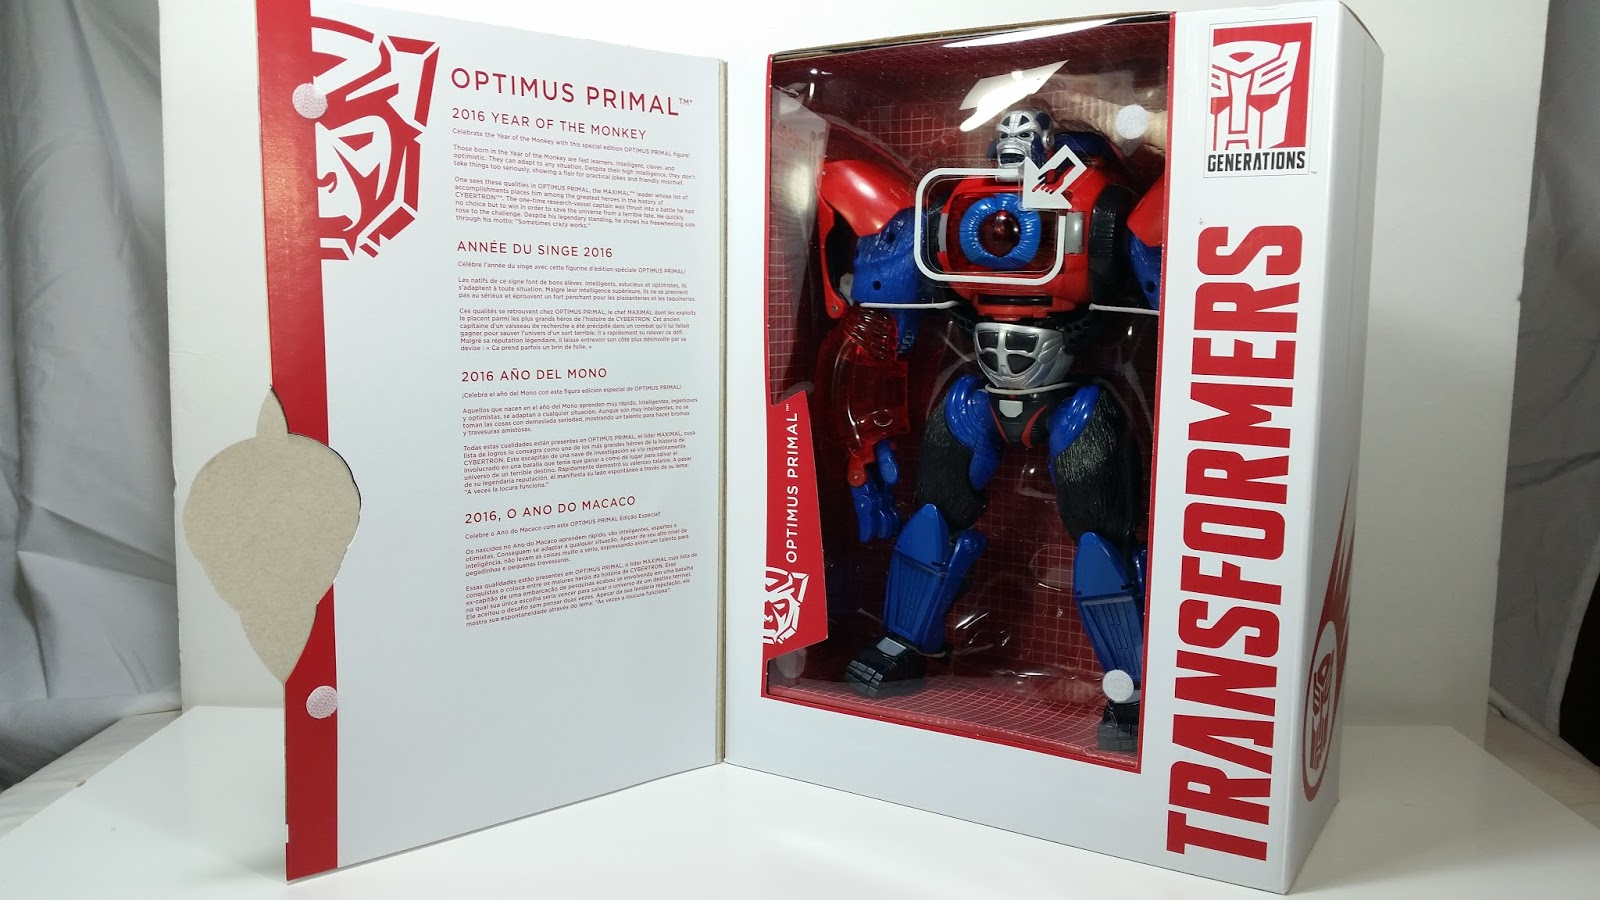 Transformers News: Video Review of Hasbro Platinum Edition Year of the Monkey Optimus Primal